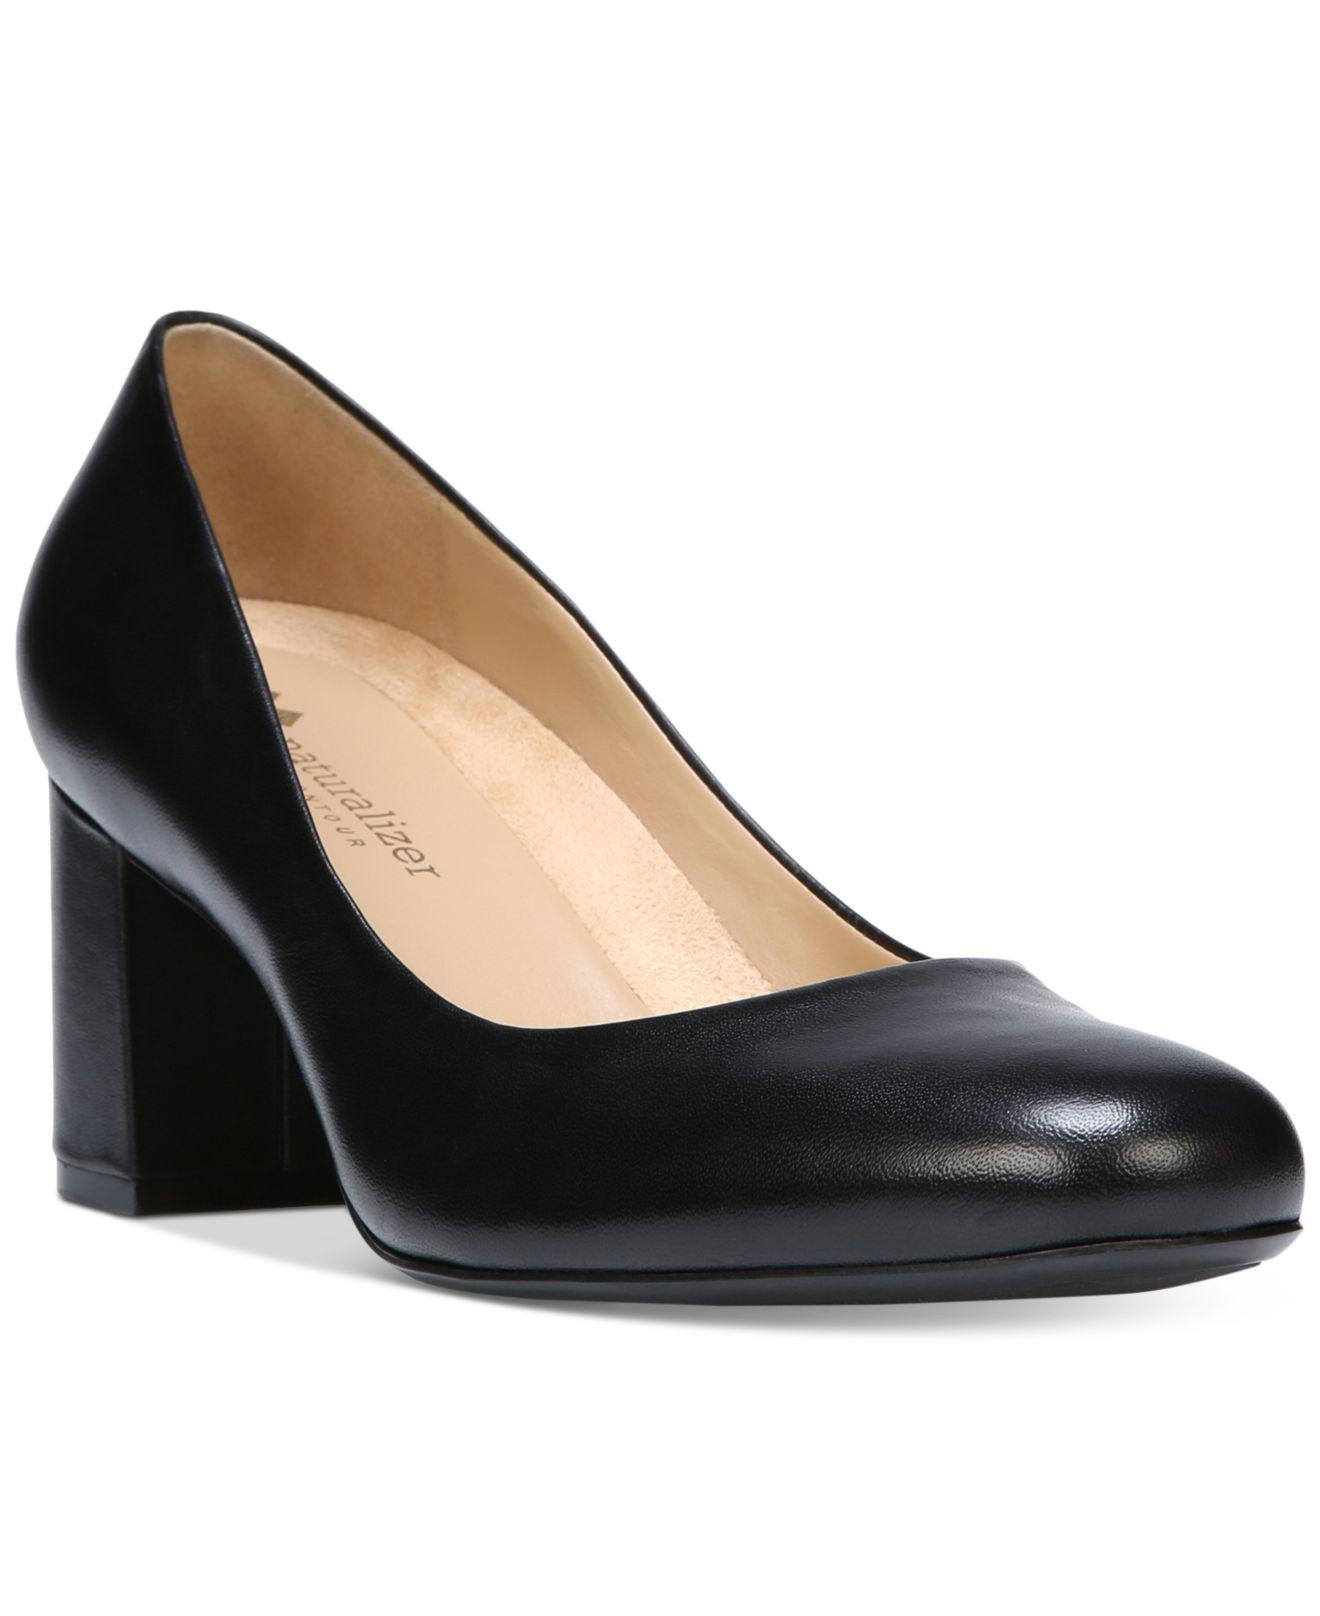 3f284f43803b Lyst - Naturalizer Whitney Pumps in Black - Save 30%